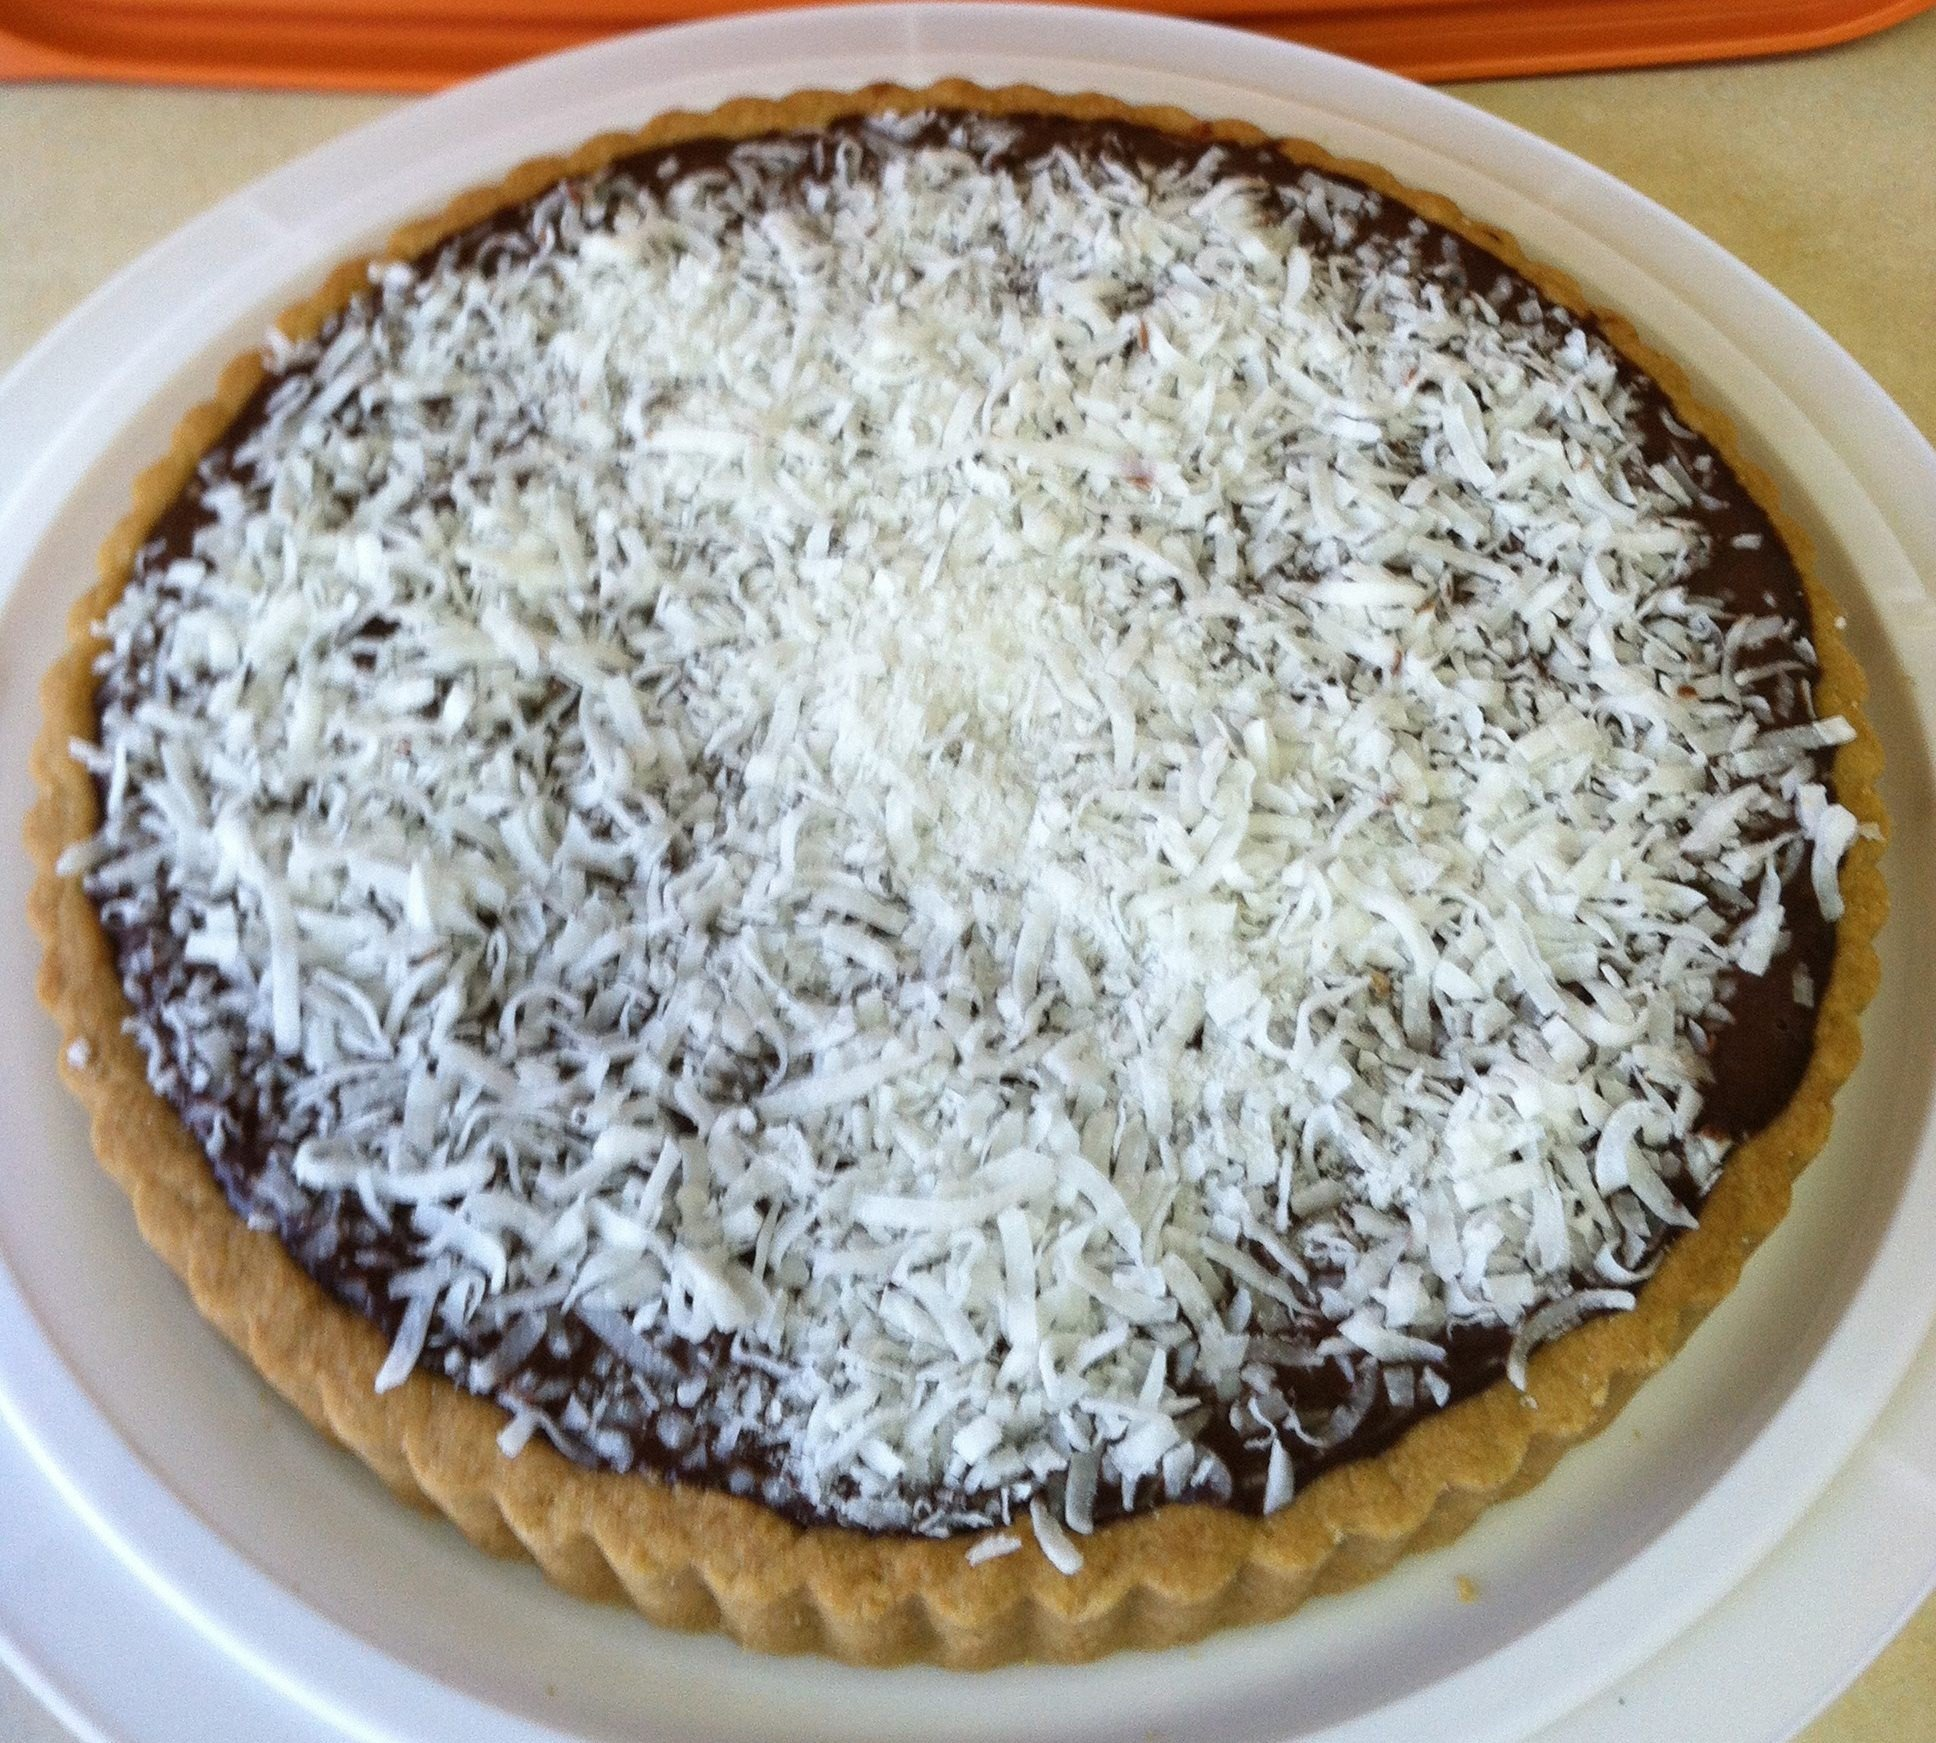 Accidental Cream Pie Great plantbased archives - page 4 of 4 - veganification